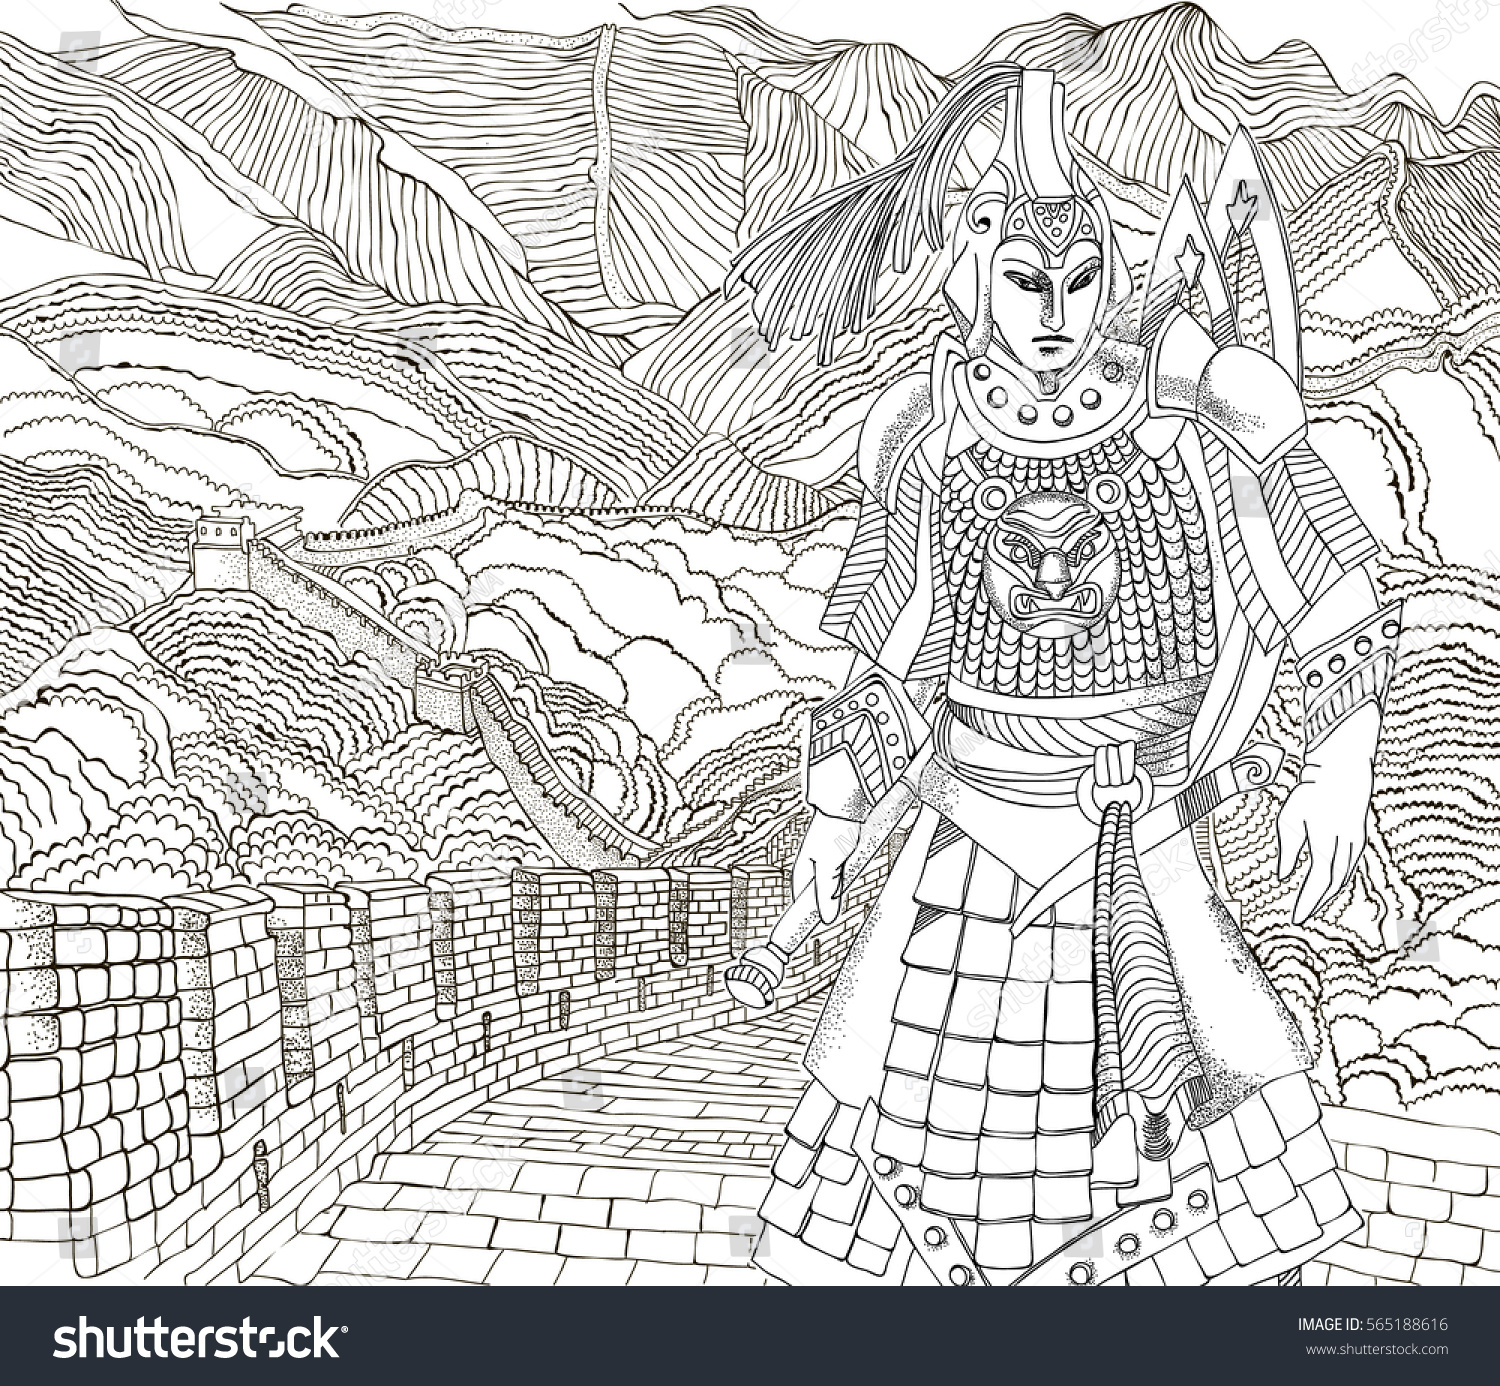 coloring pages beautiful chinese warrior against the backdrop of the great wall of china - Great Wall China Coloring Page